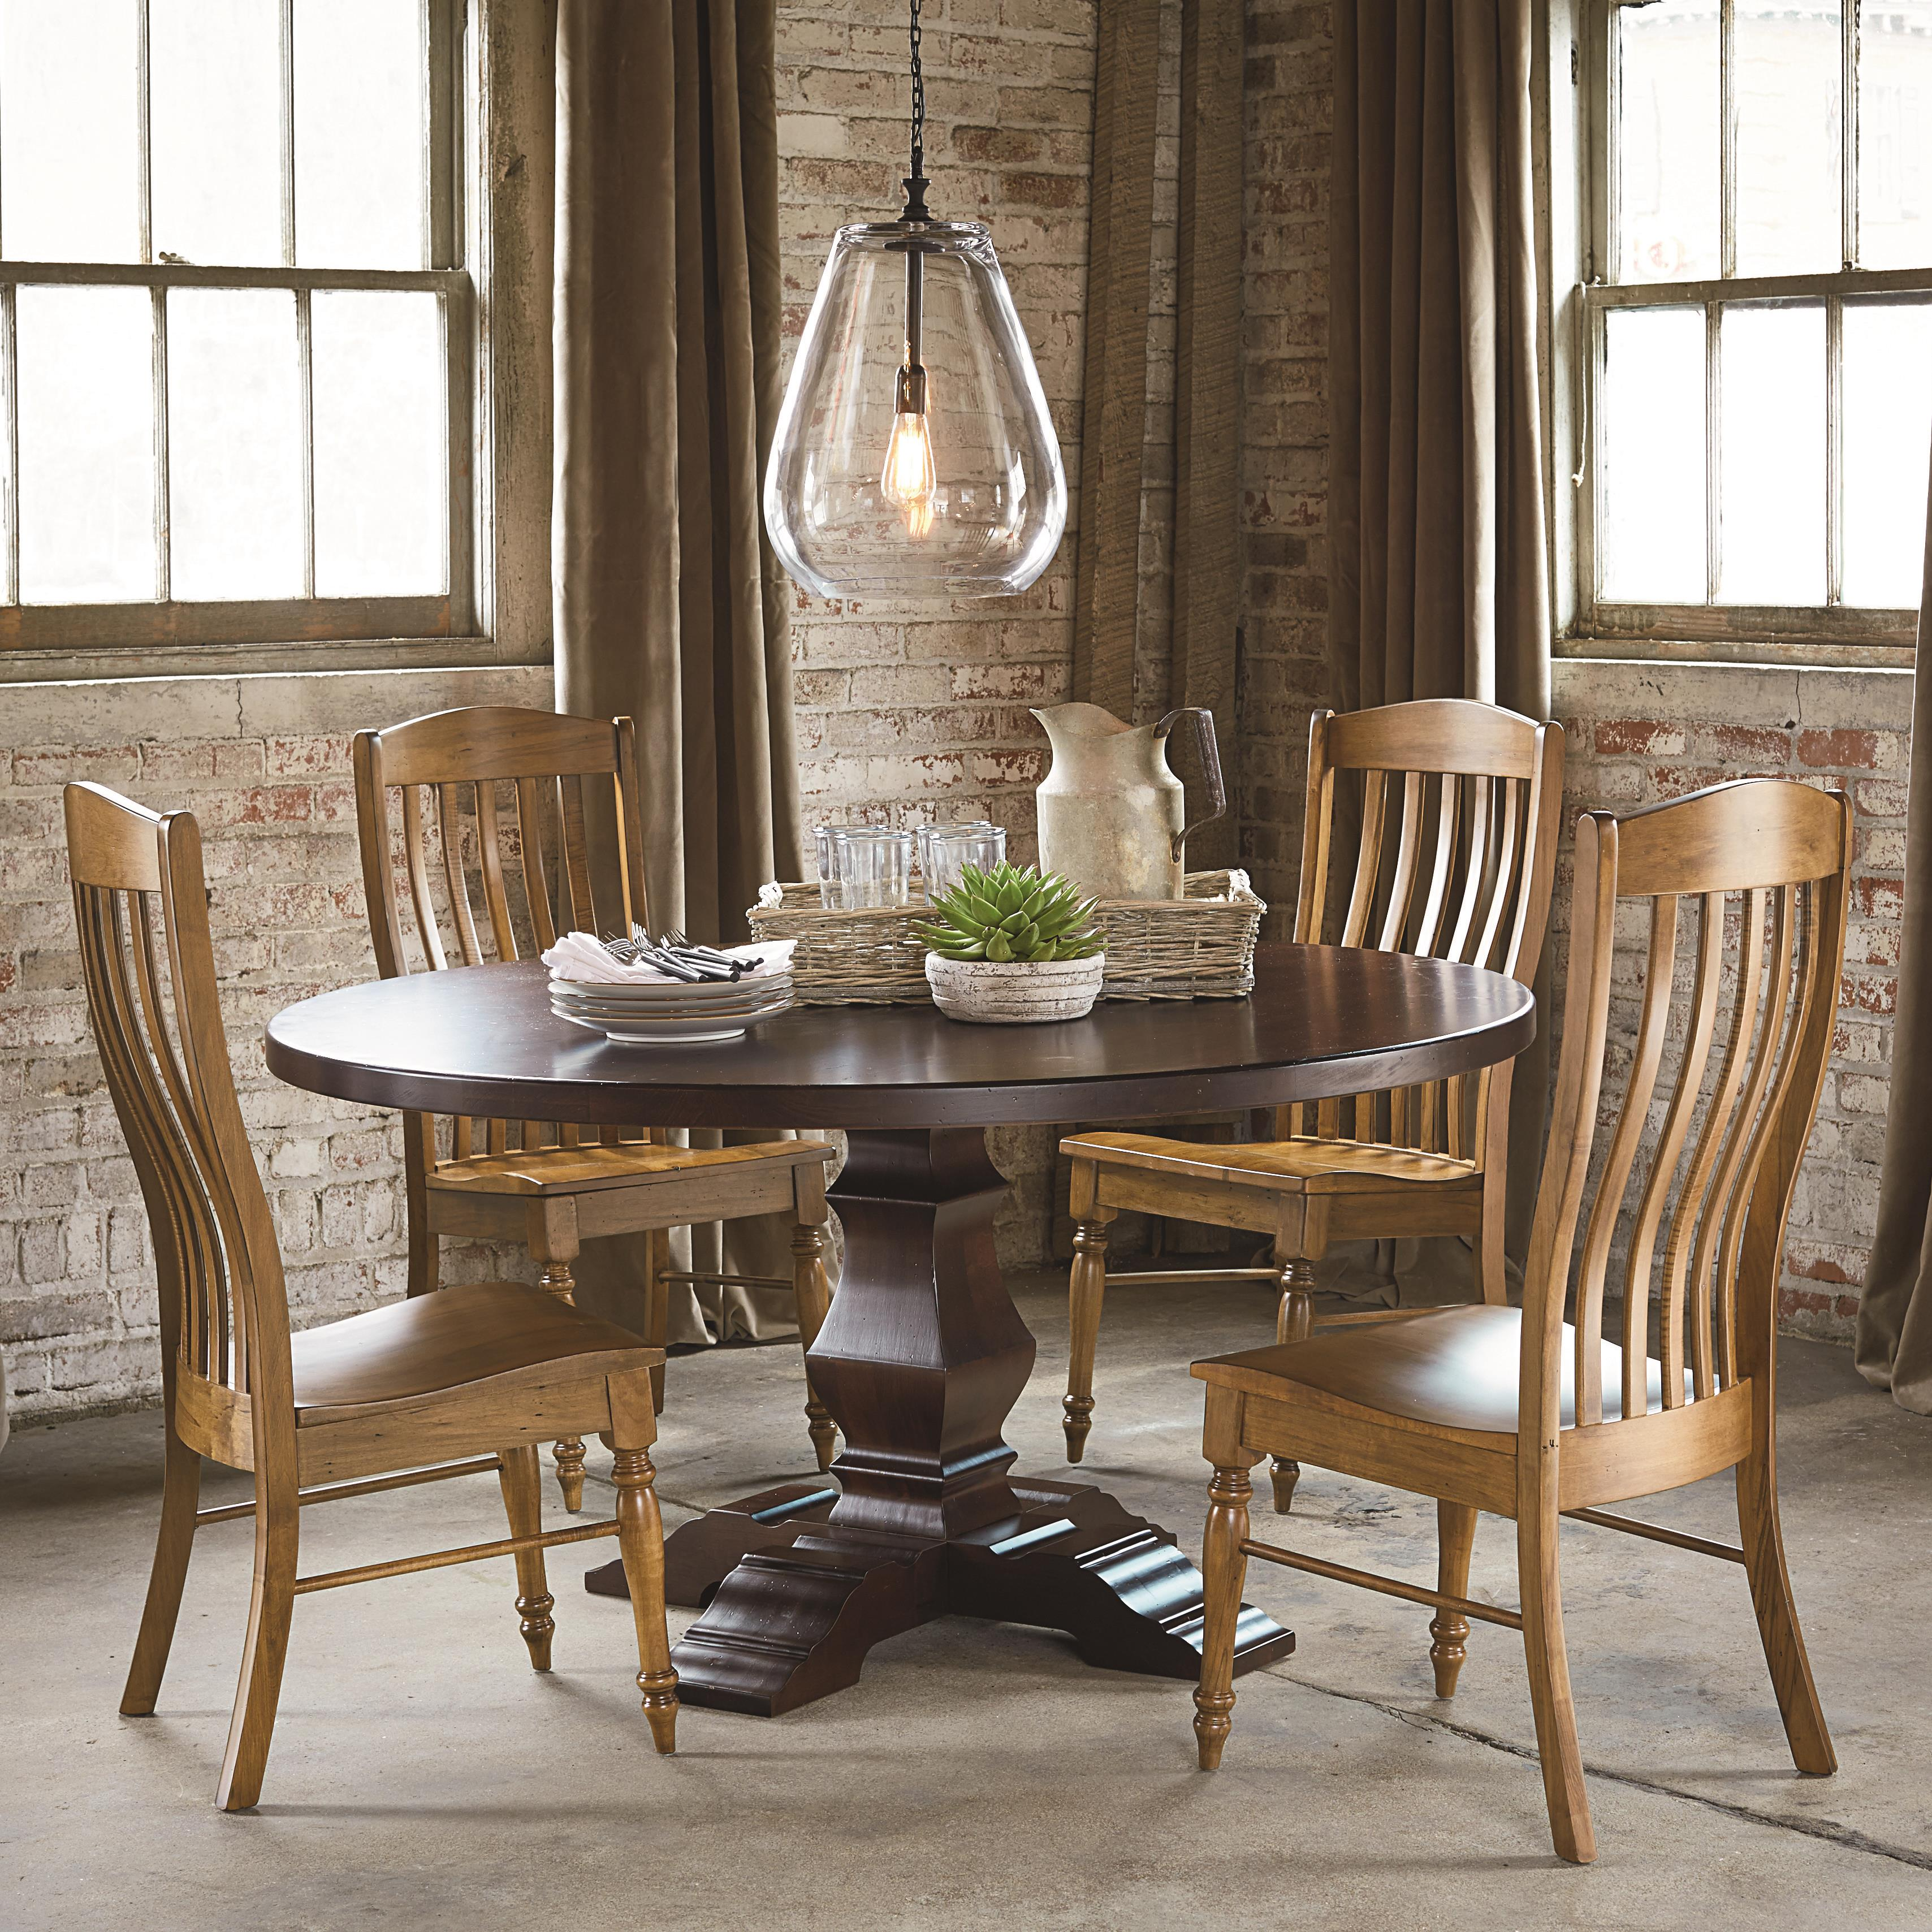 bassett bench made four person round tavern table set fashion furniture dining 5 piece sets. Black Bedroom Furniture Sets. Home Design Ideas